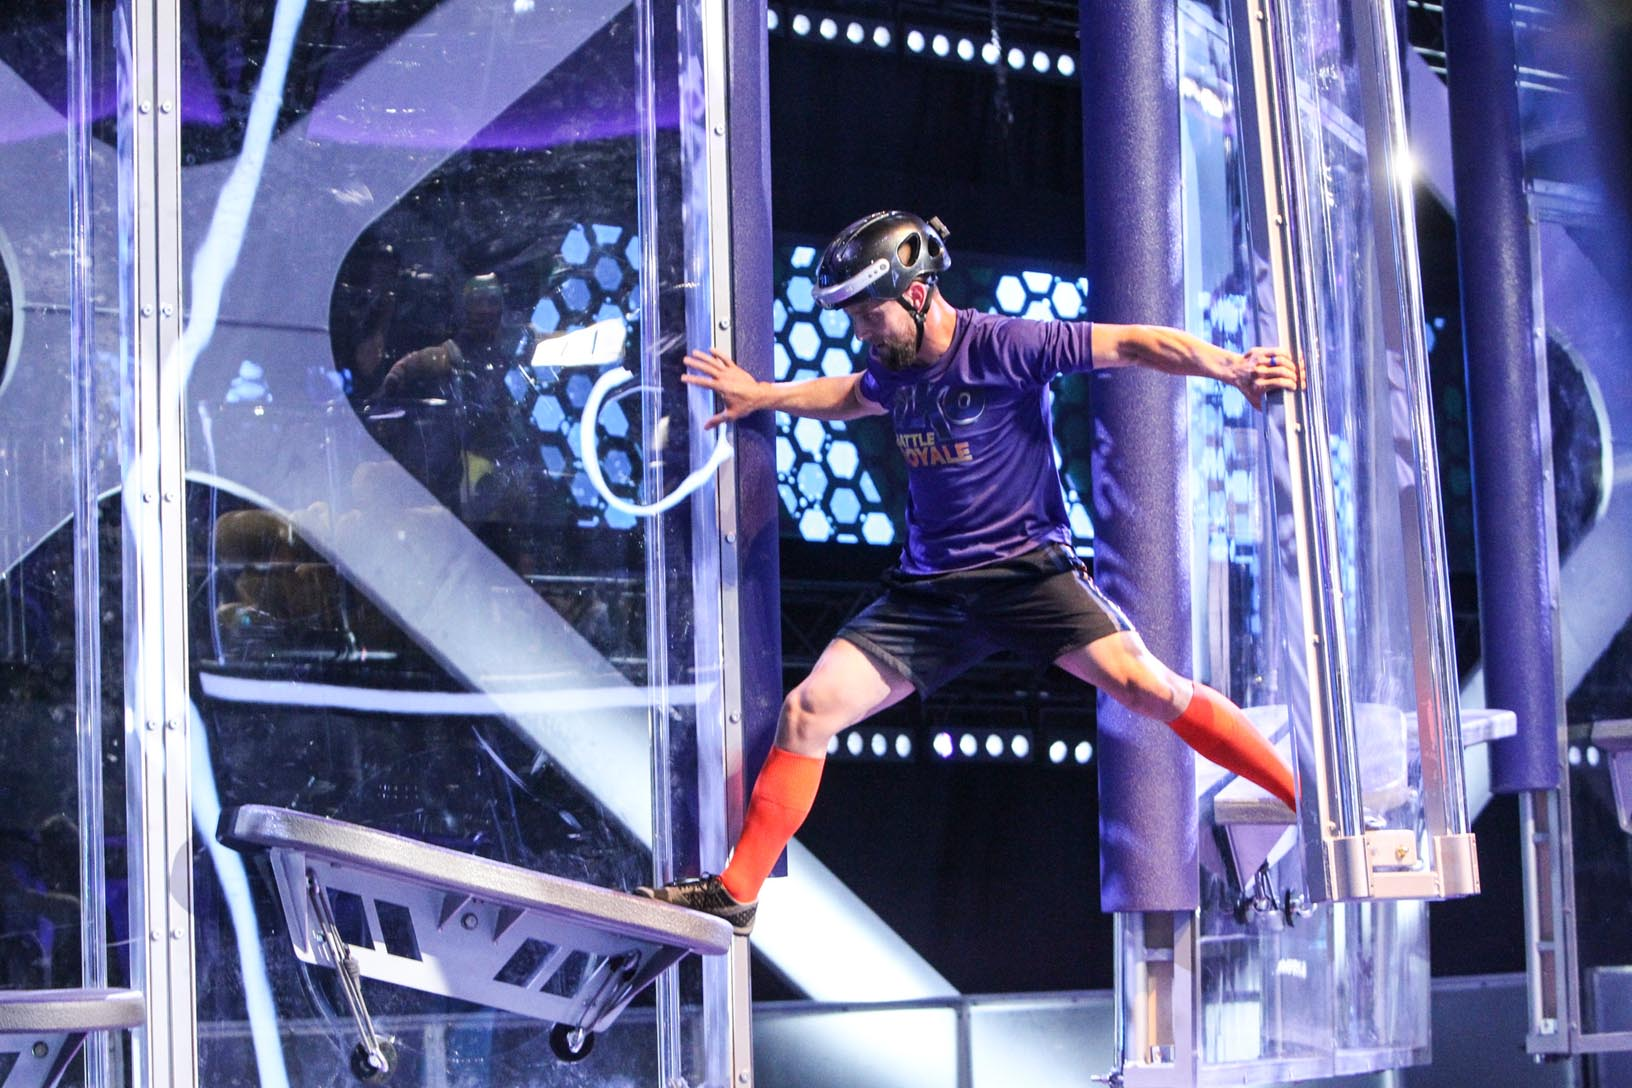 """Bryce Abbey competes in """"TKO: Total Knockout's"""" Battle Royale, which he won. (Photo by Sonja Flemming, CBS ©2018 CBS Broadcasting)"""